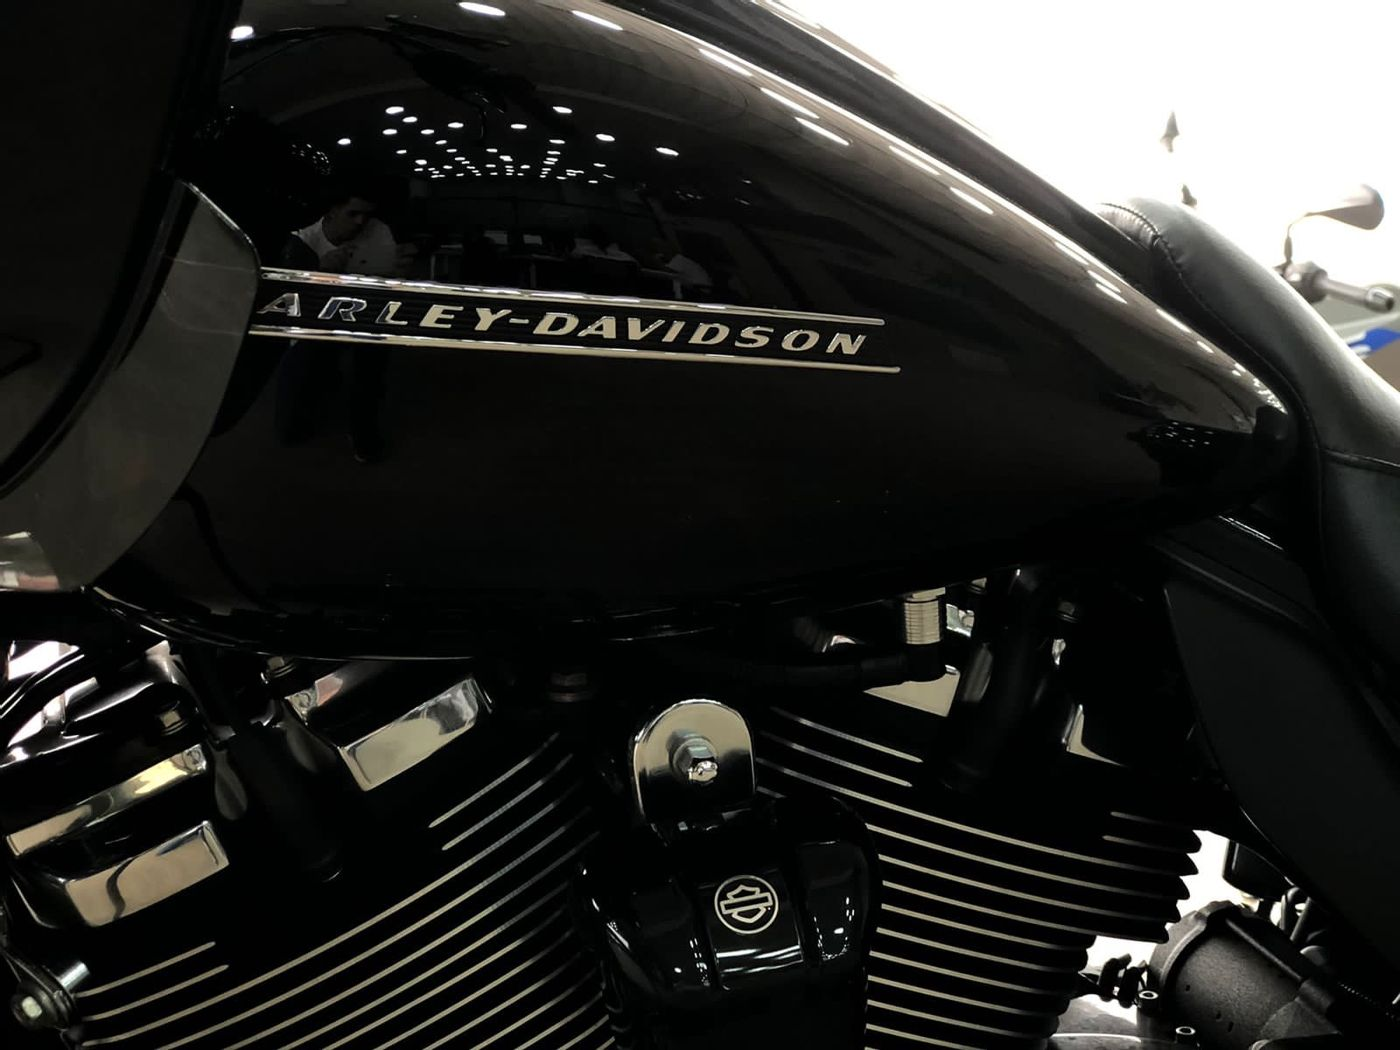 Harley ROAD GLIDE SPECIAL FLTRXS